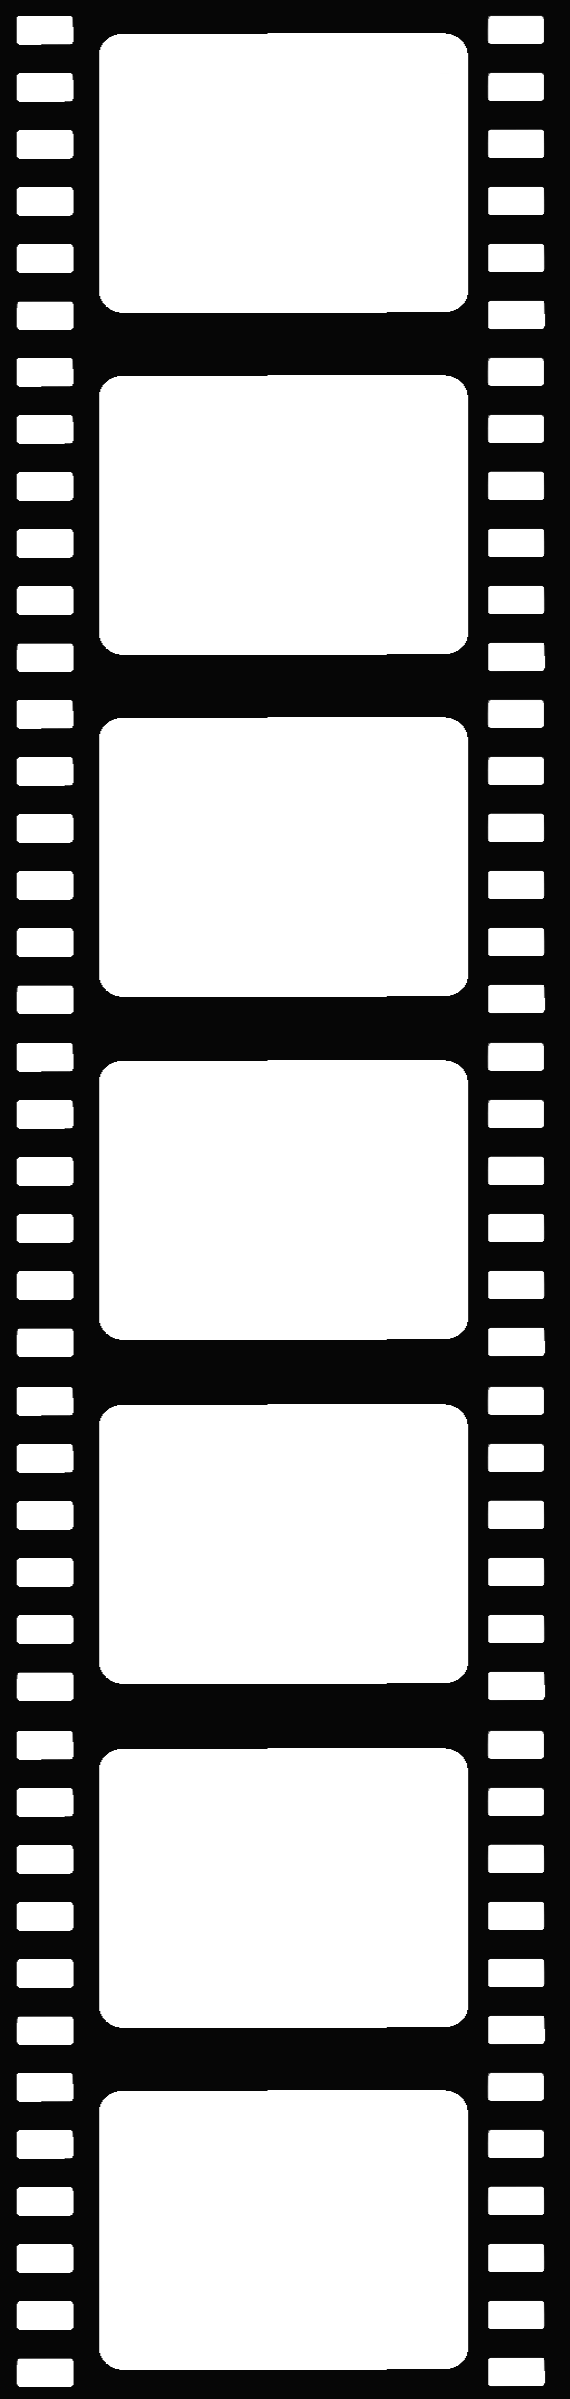 Film frame png. Images of spacehero related